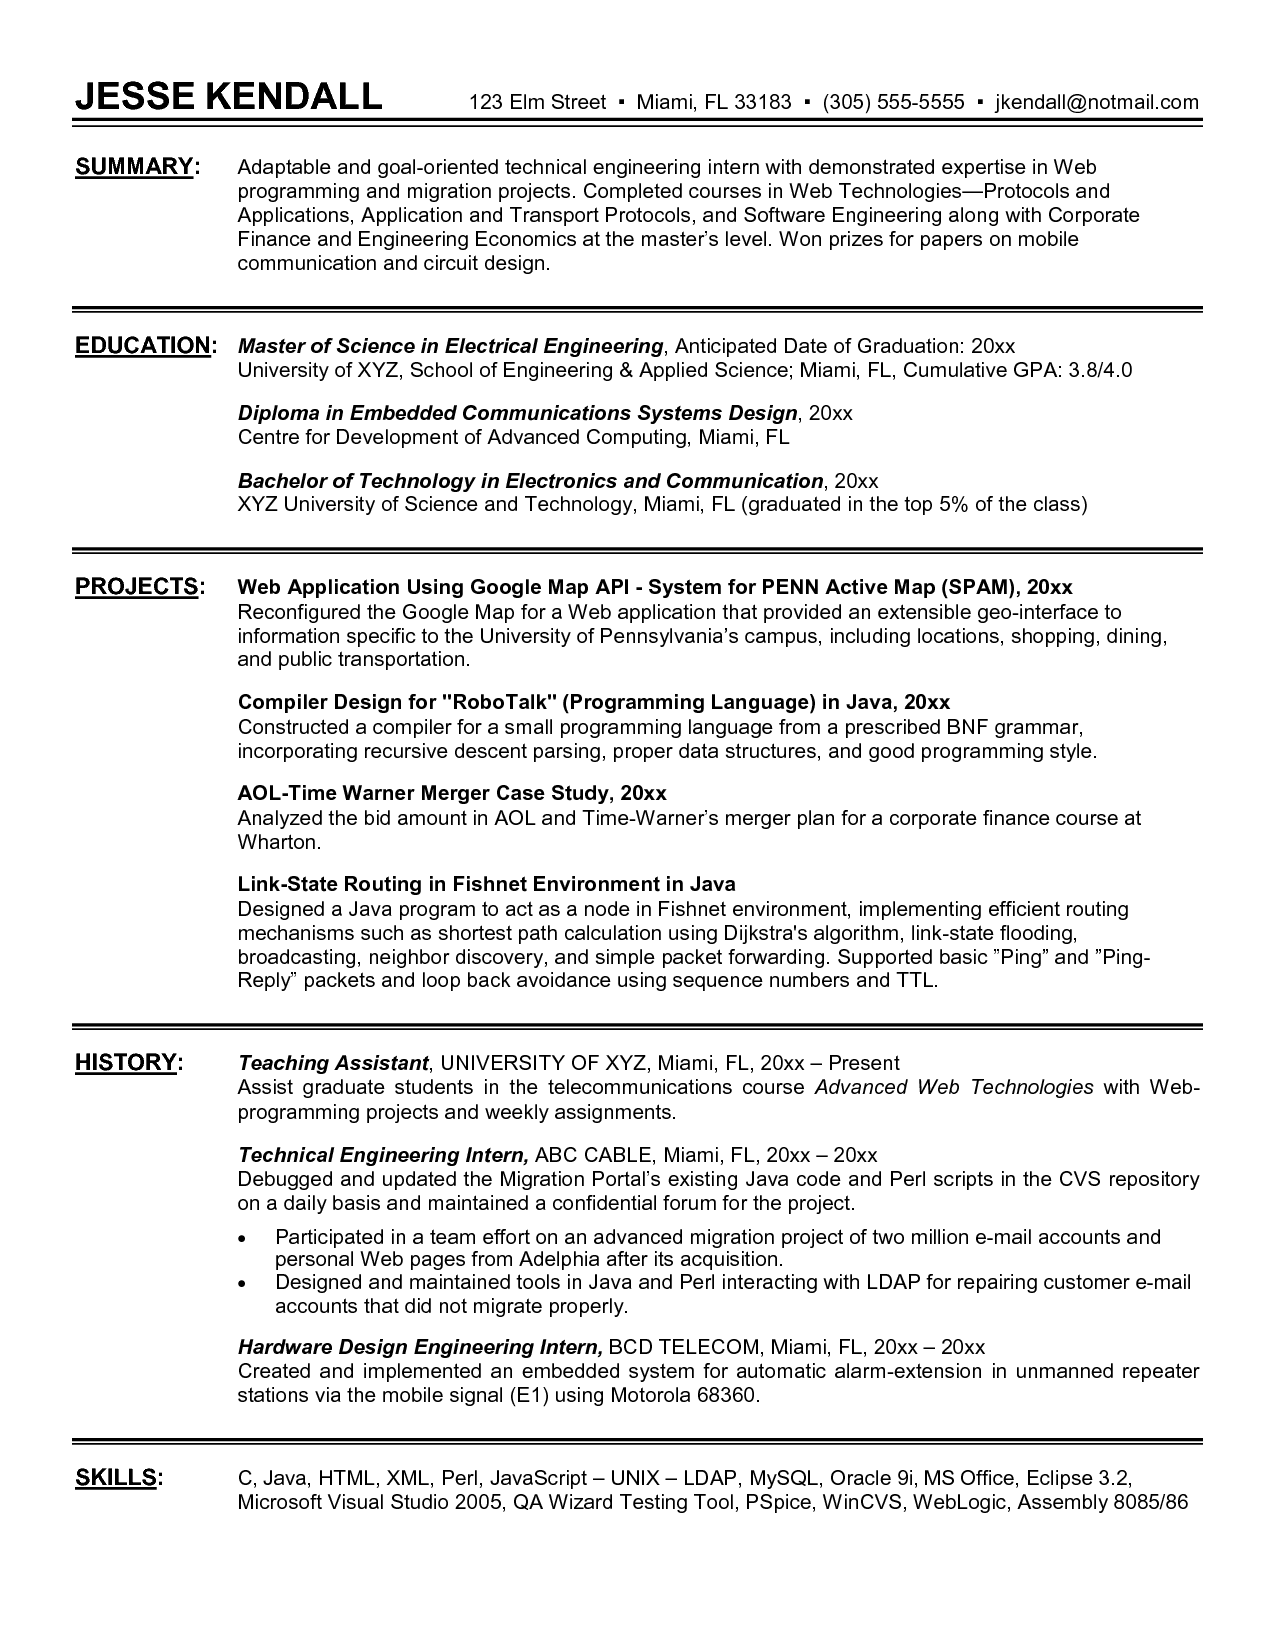 Microsoft Test Engineer Sample Resume Actuarial Science Resume Template Resumes Essay First Master